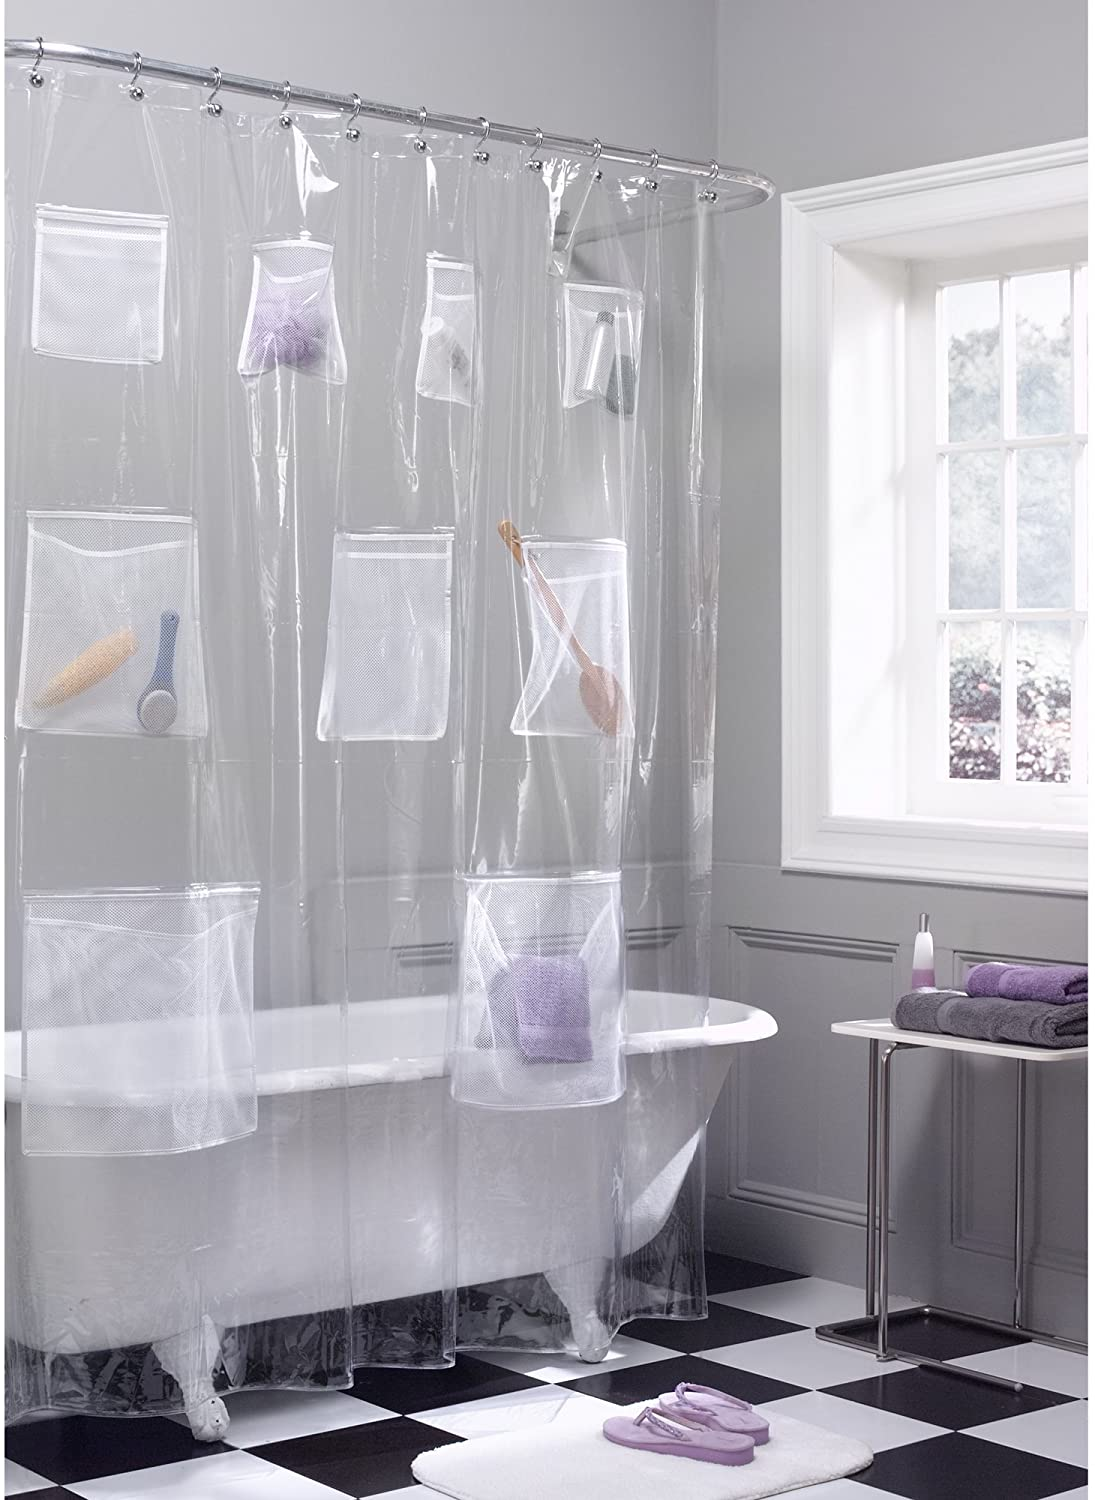 Amazon Com Maytex Quick Dry Mesh Pockets Waterproof Peva Shower Curtain Or Liner Bath Shower Organizer Clear 70 Inches X 72 Inches Home Kitchen